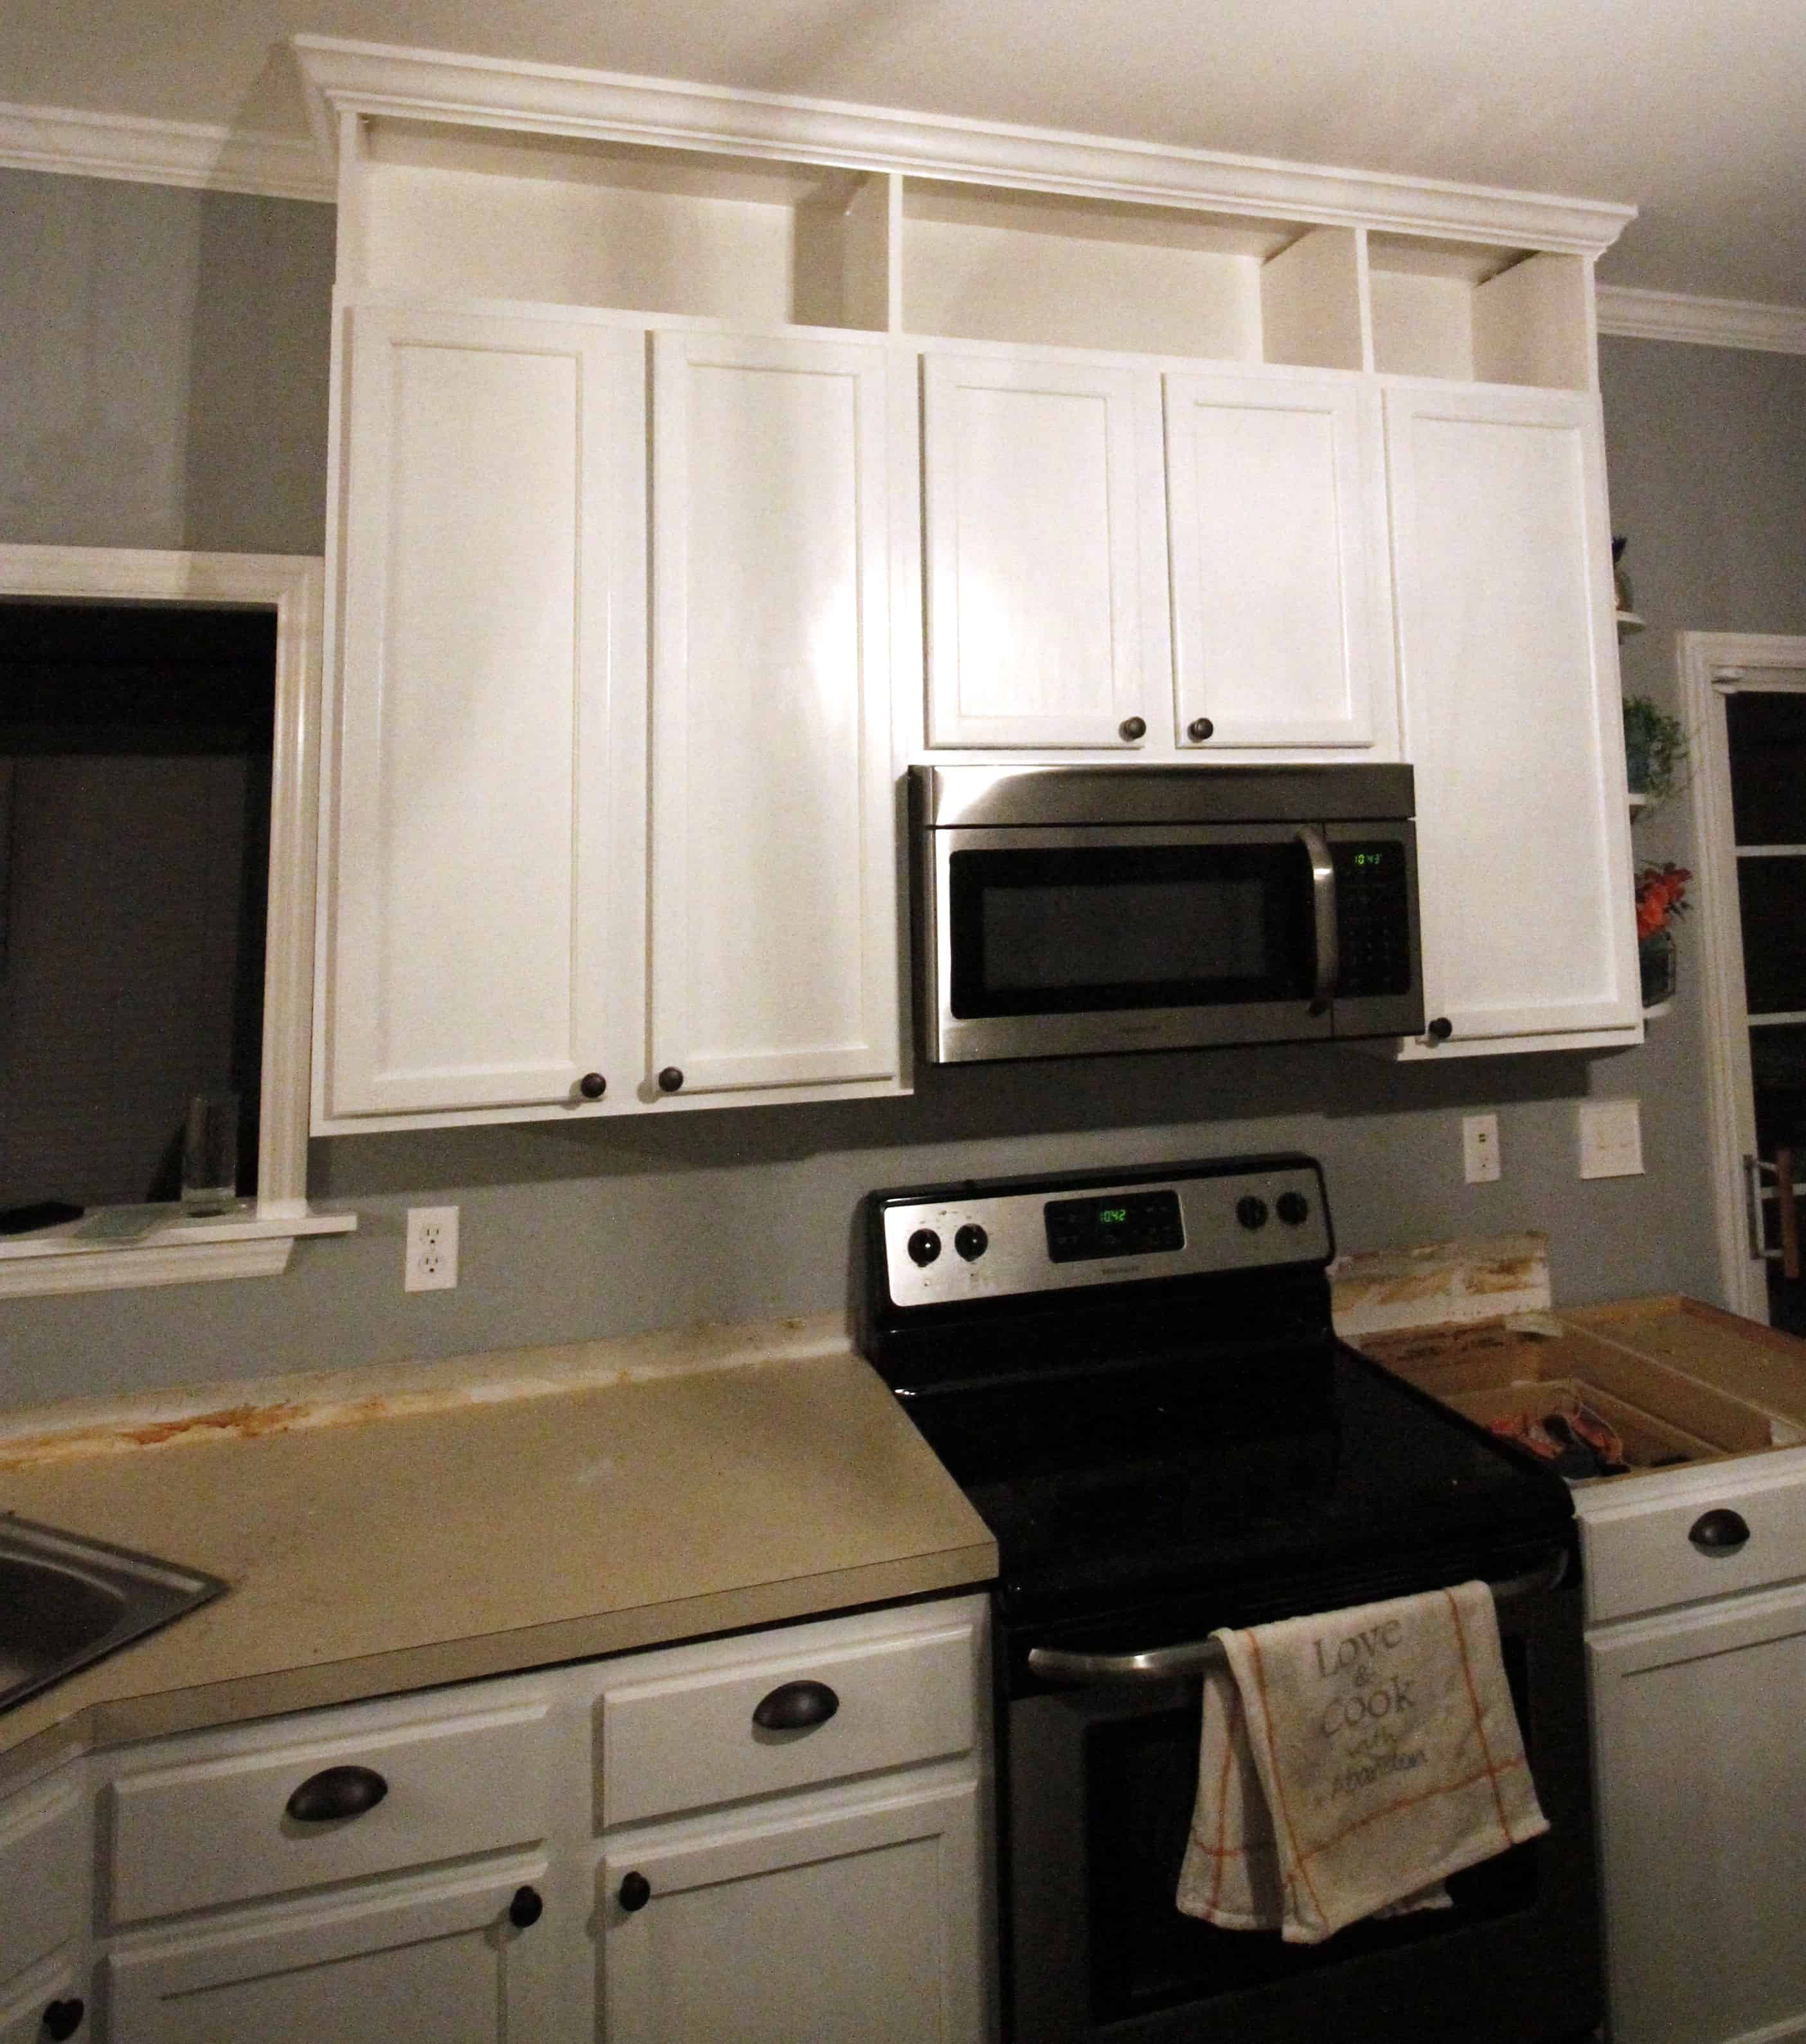 Diy Extend Kitchen Cabinets How To Extend Kitchen Cabinets To The Ceiling Charleston